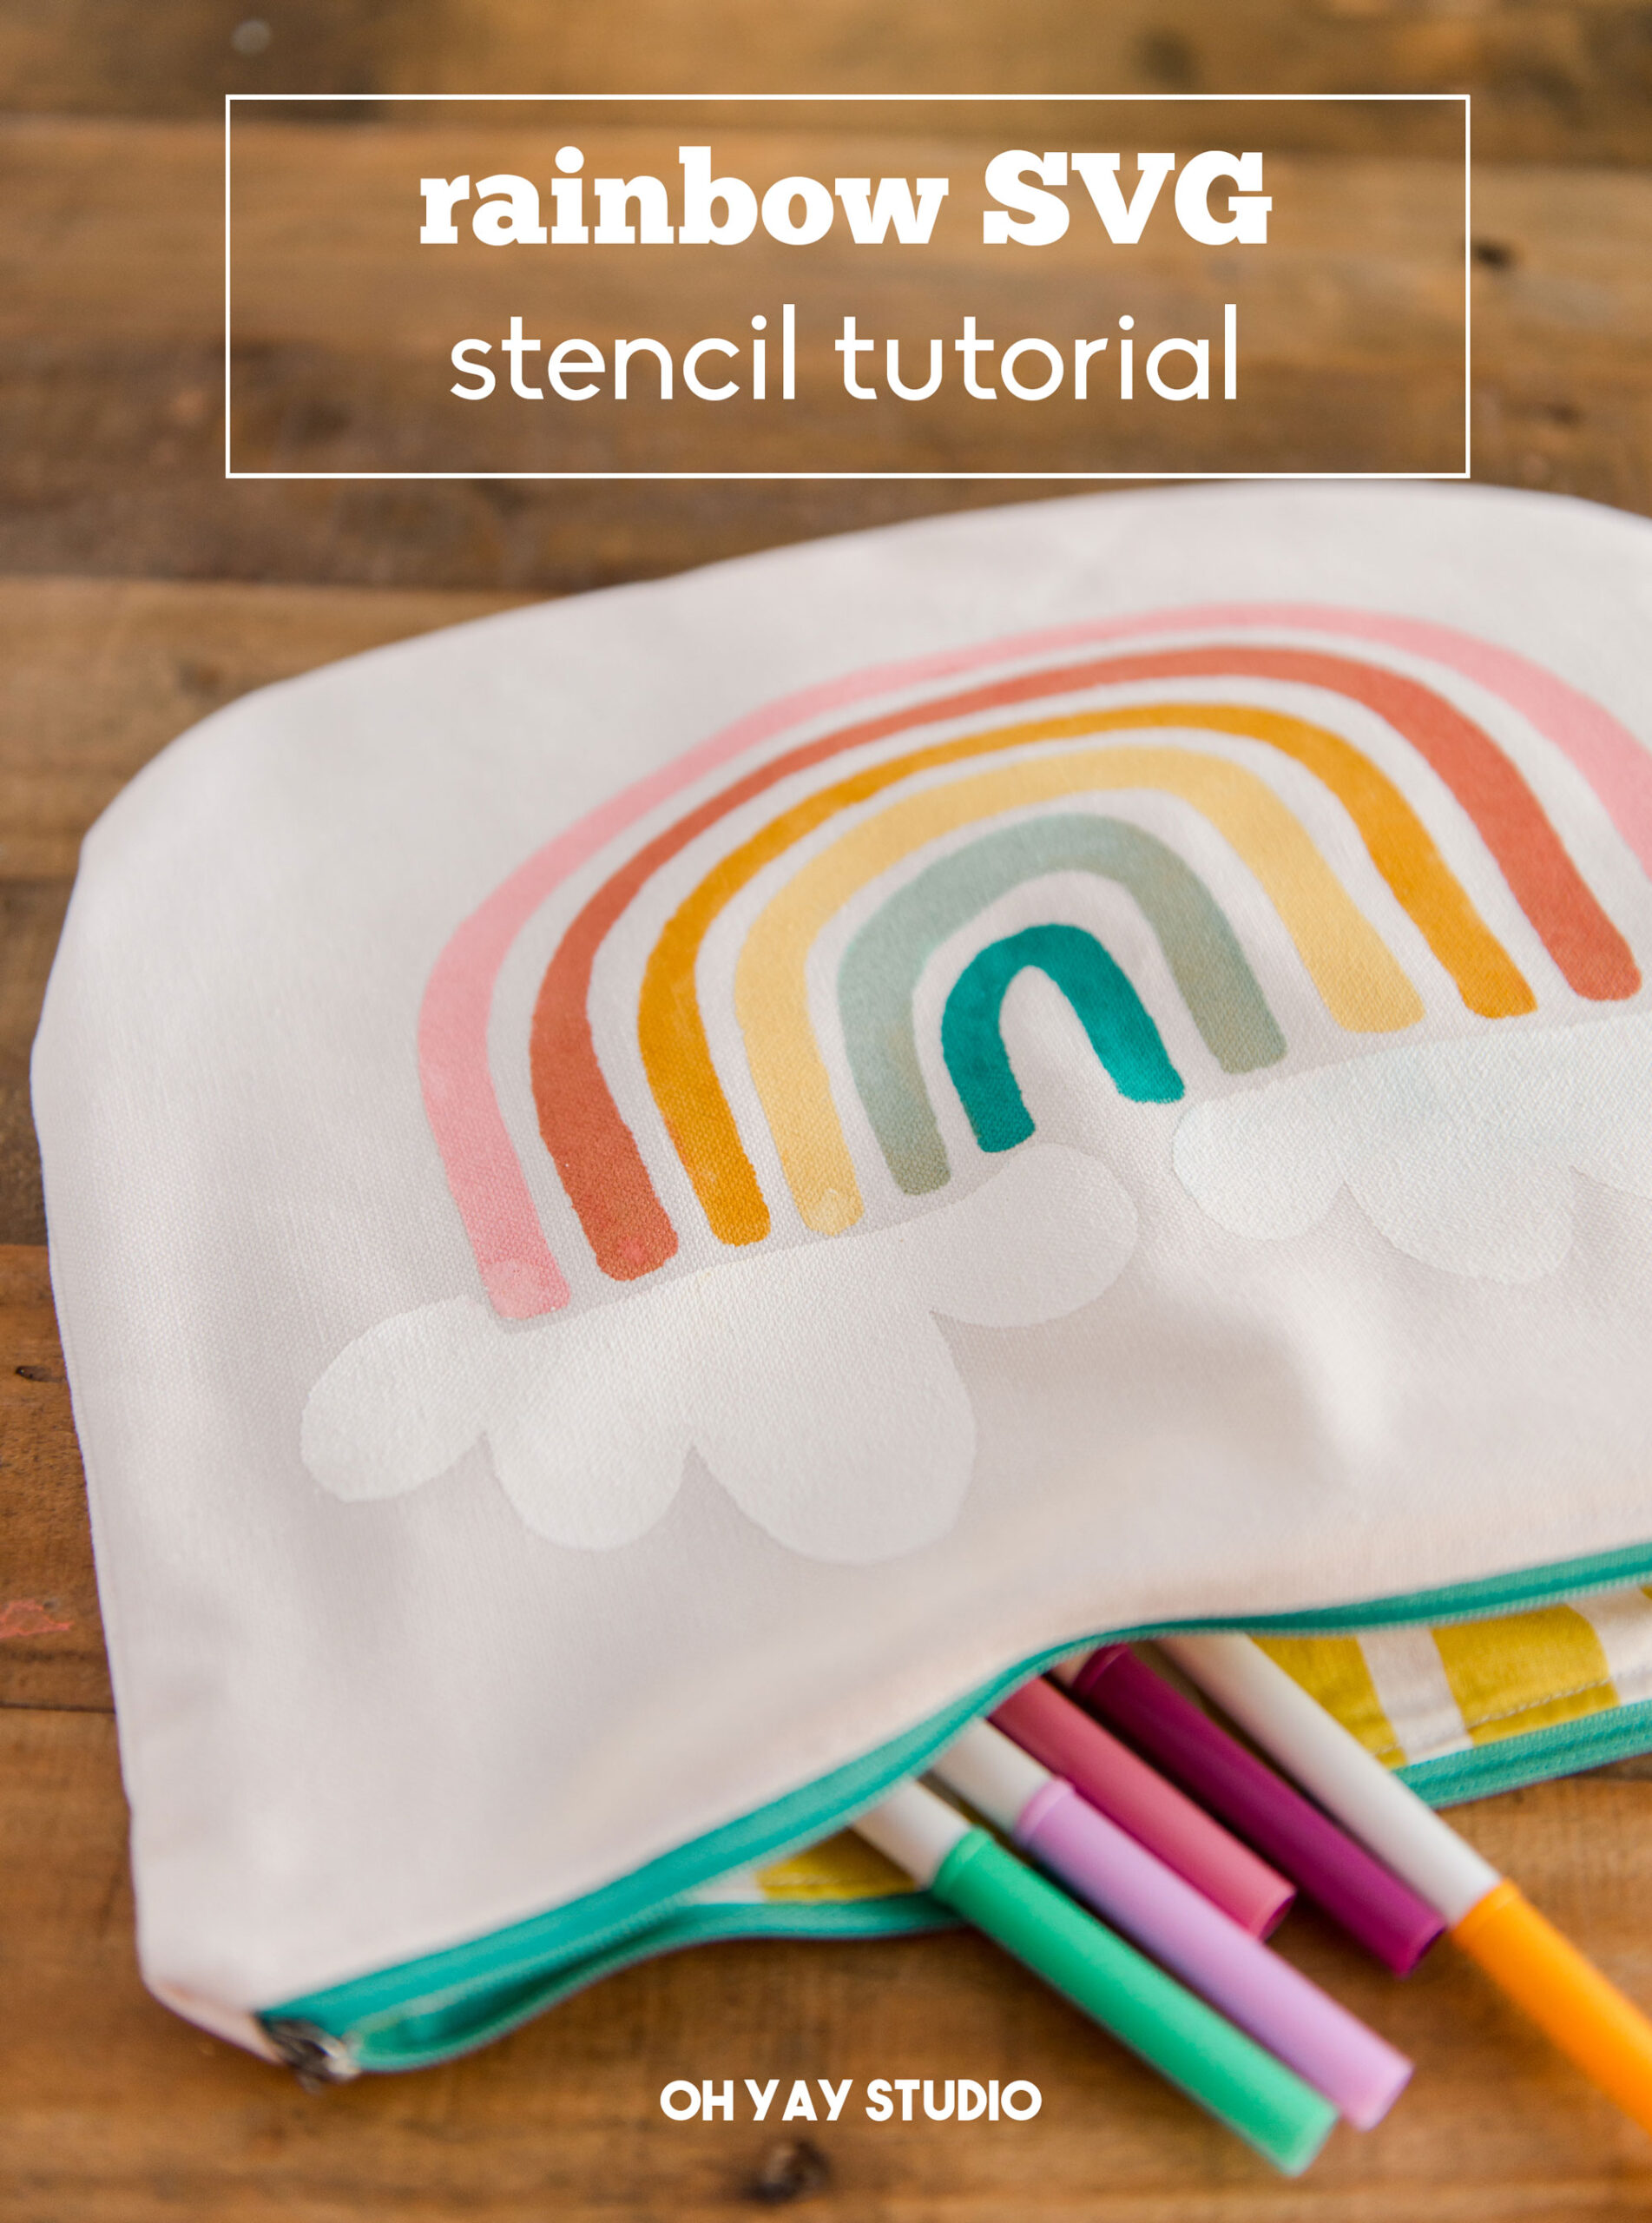 how to make a SVG stencil, free SVG files, SVG stencil, fabric paint SVG stencil, Cricut SVG, Cricut SVG files, St Patricks day SVG, St patricks day SVG files